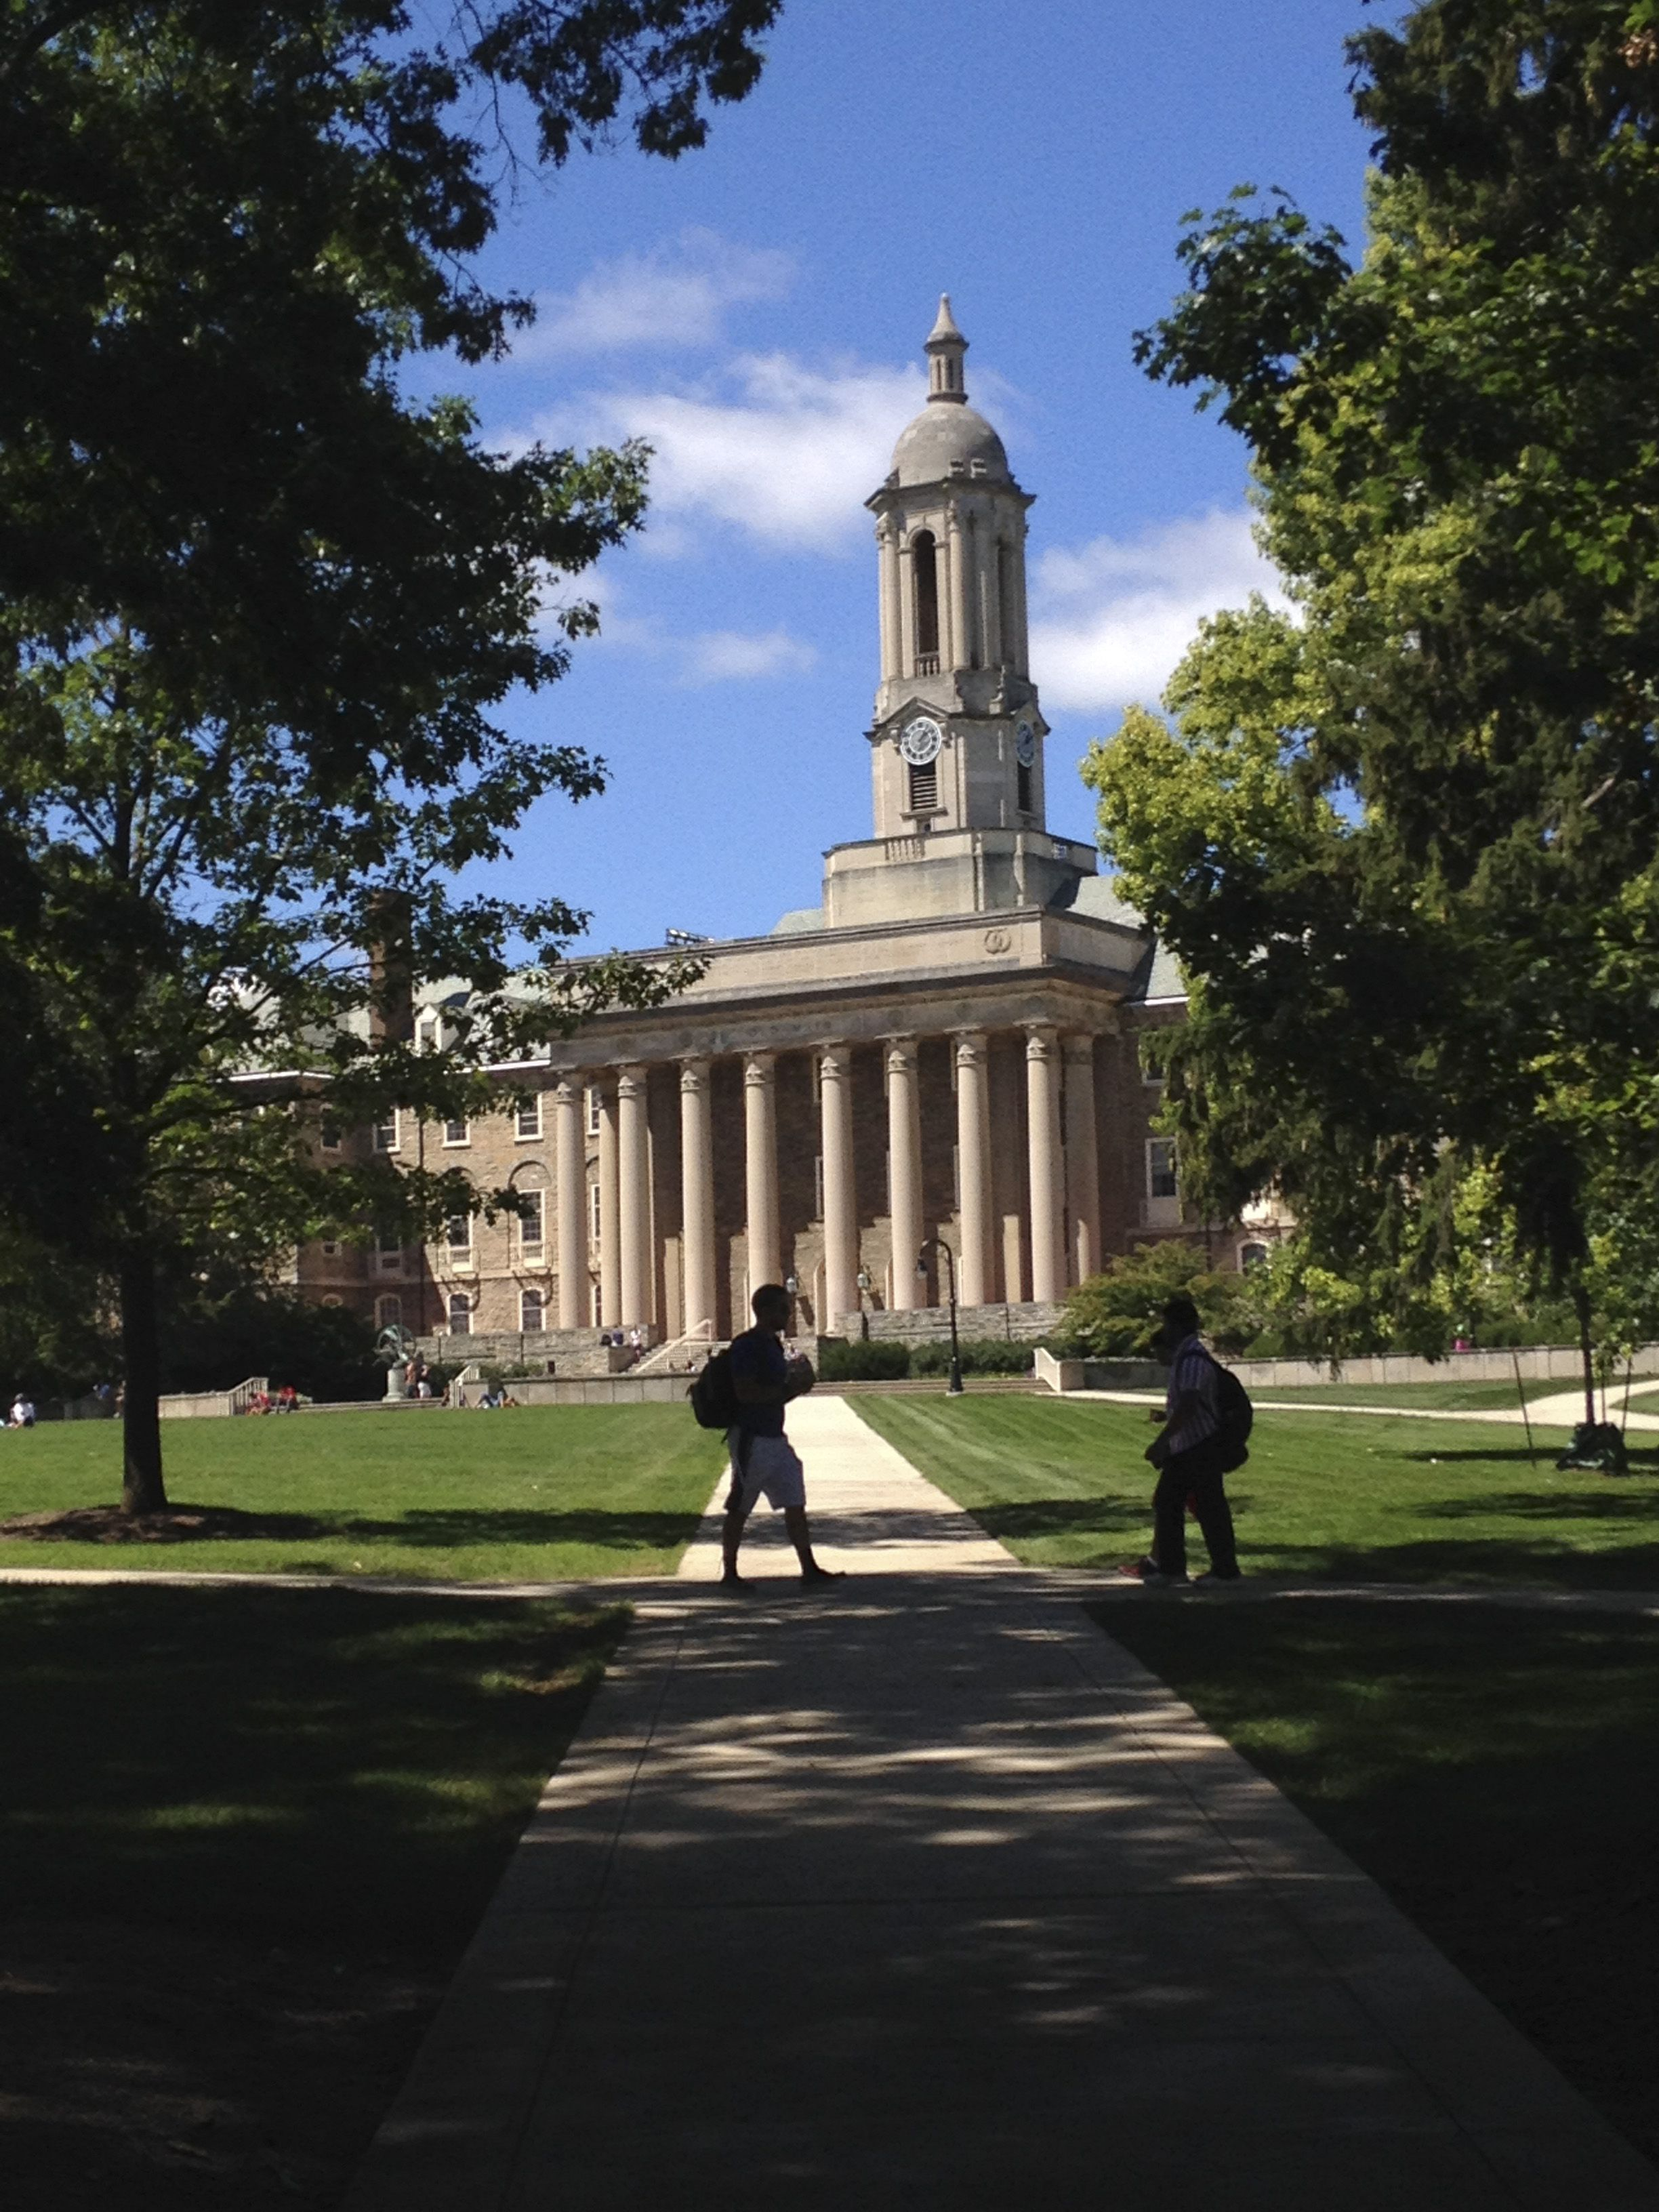 Penn State Campus 8 28 14 Old Main Was Stunning Today Penn